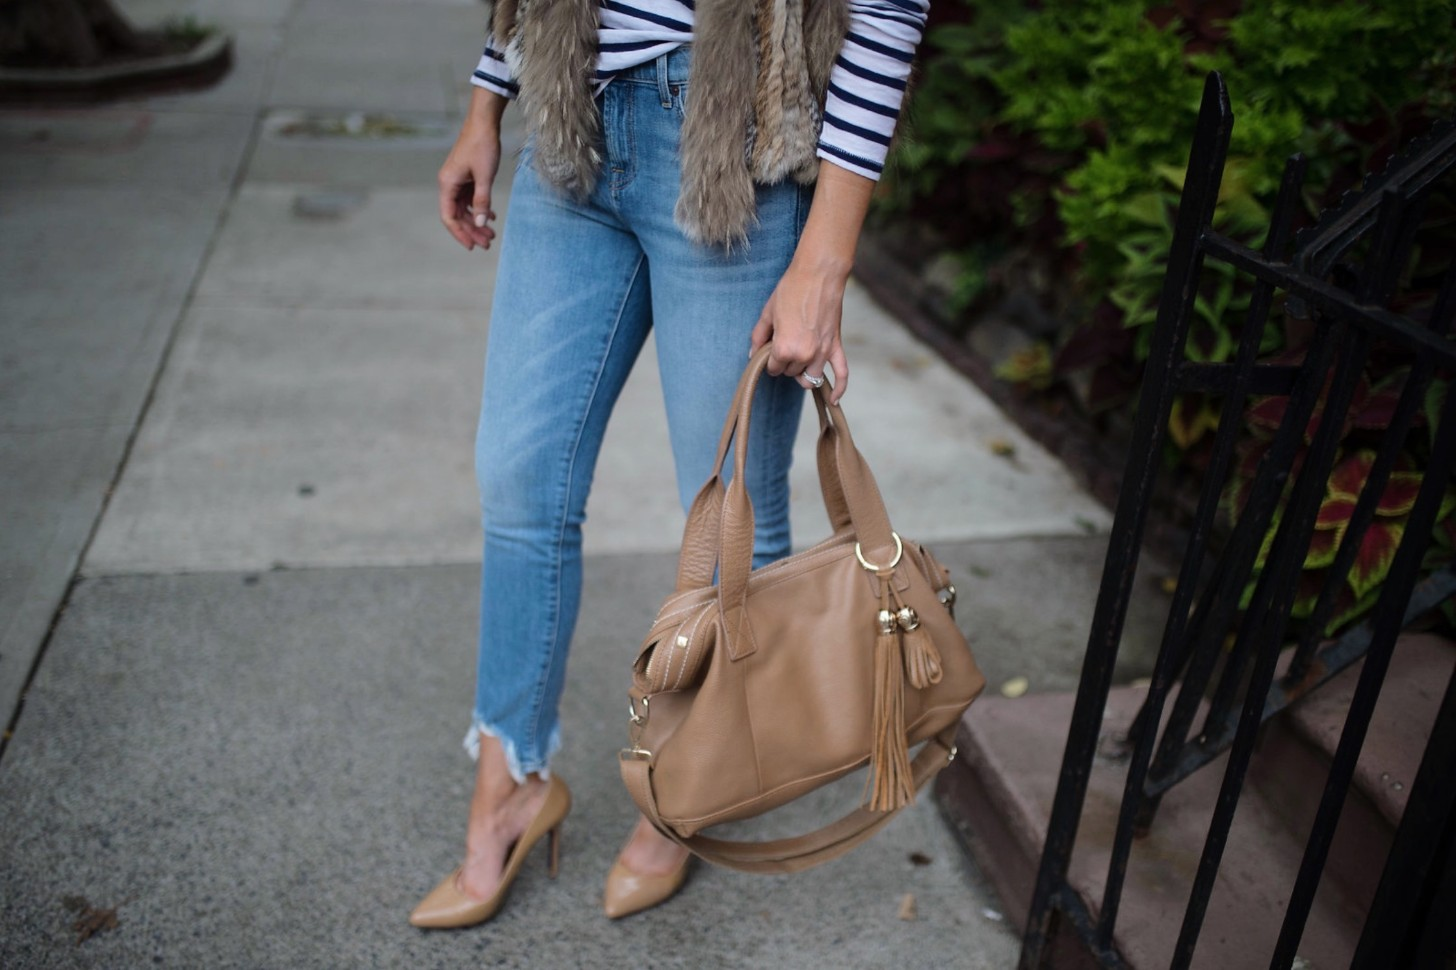 spring weekend outfit idea fur vest navy stripe jcrew top blue ripped jeans 7 for all mankind nude heels blog new york style elixir fashion blogger lauren slade 11